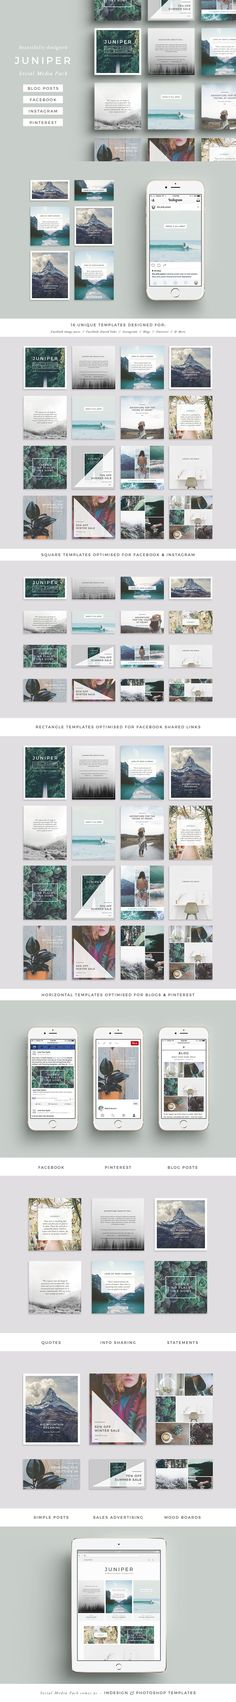 A Beautiful Multipurpose Social Media Pack Covering all Bases With Easy to use Templates INDD, PSD